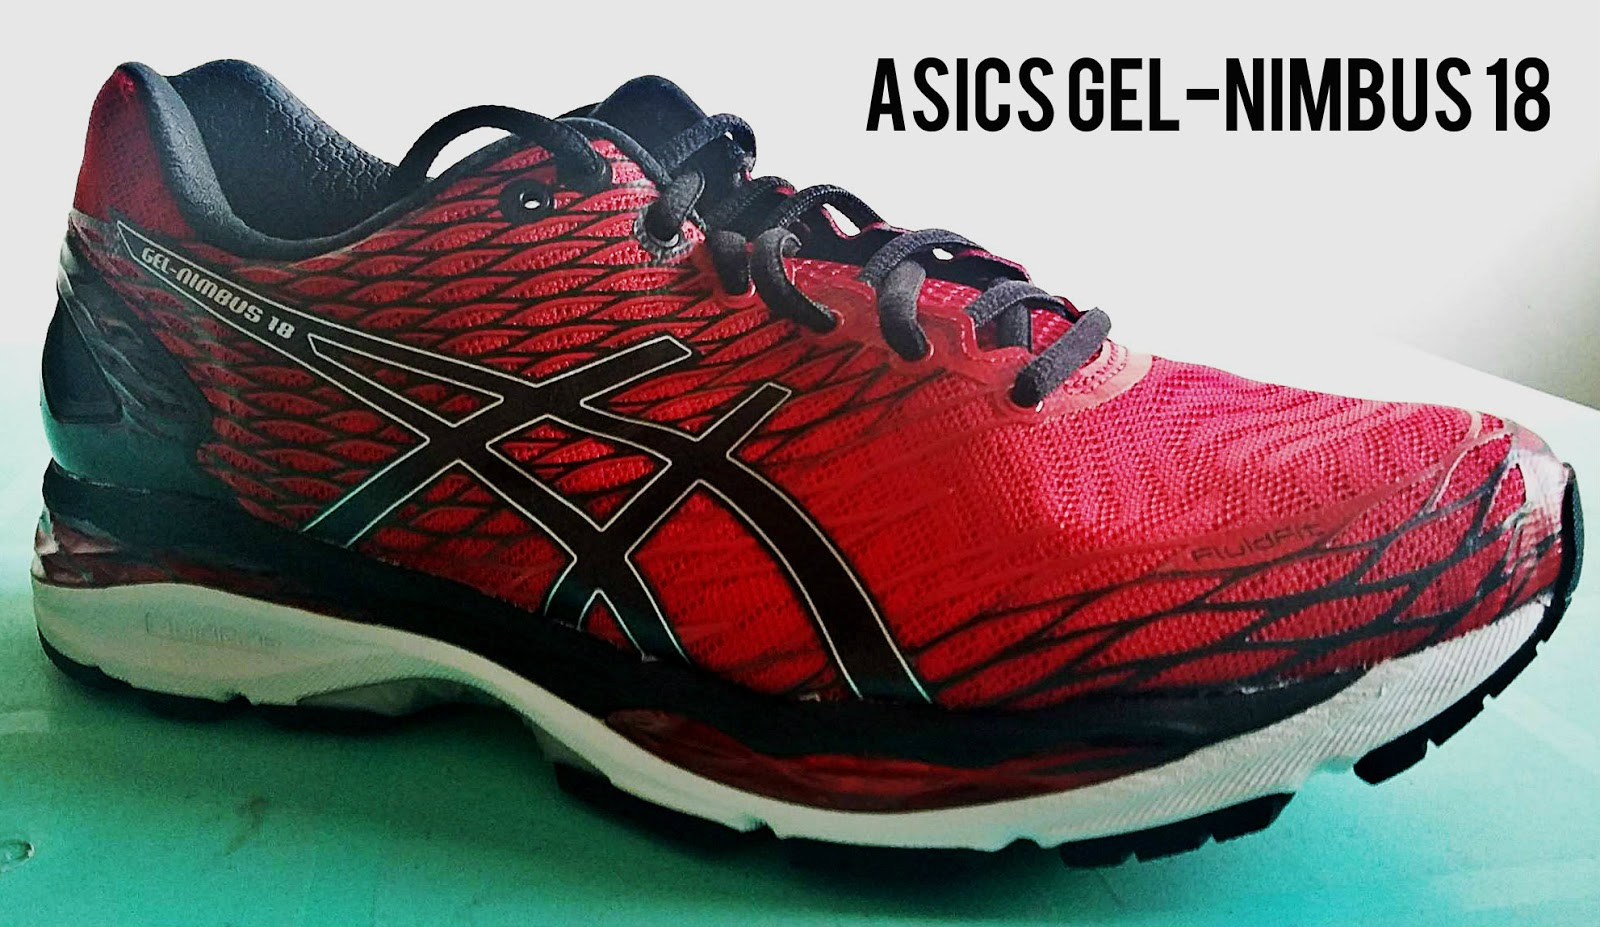 shoe review asics gel nimbus 18 the cloud runner. Black Bedroom Furniture Sets. Home Design Ideas